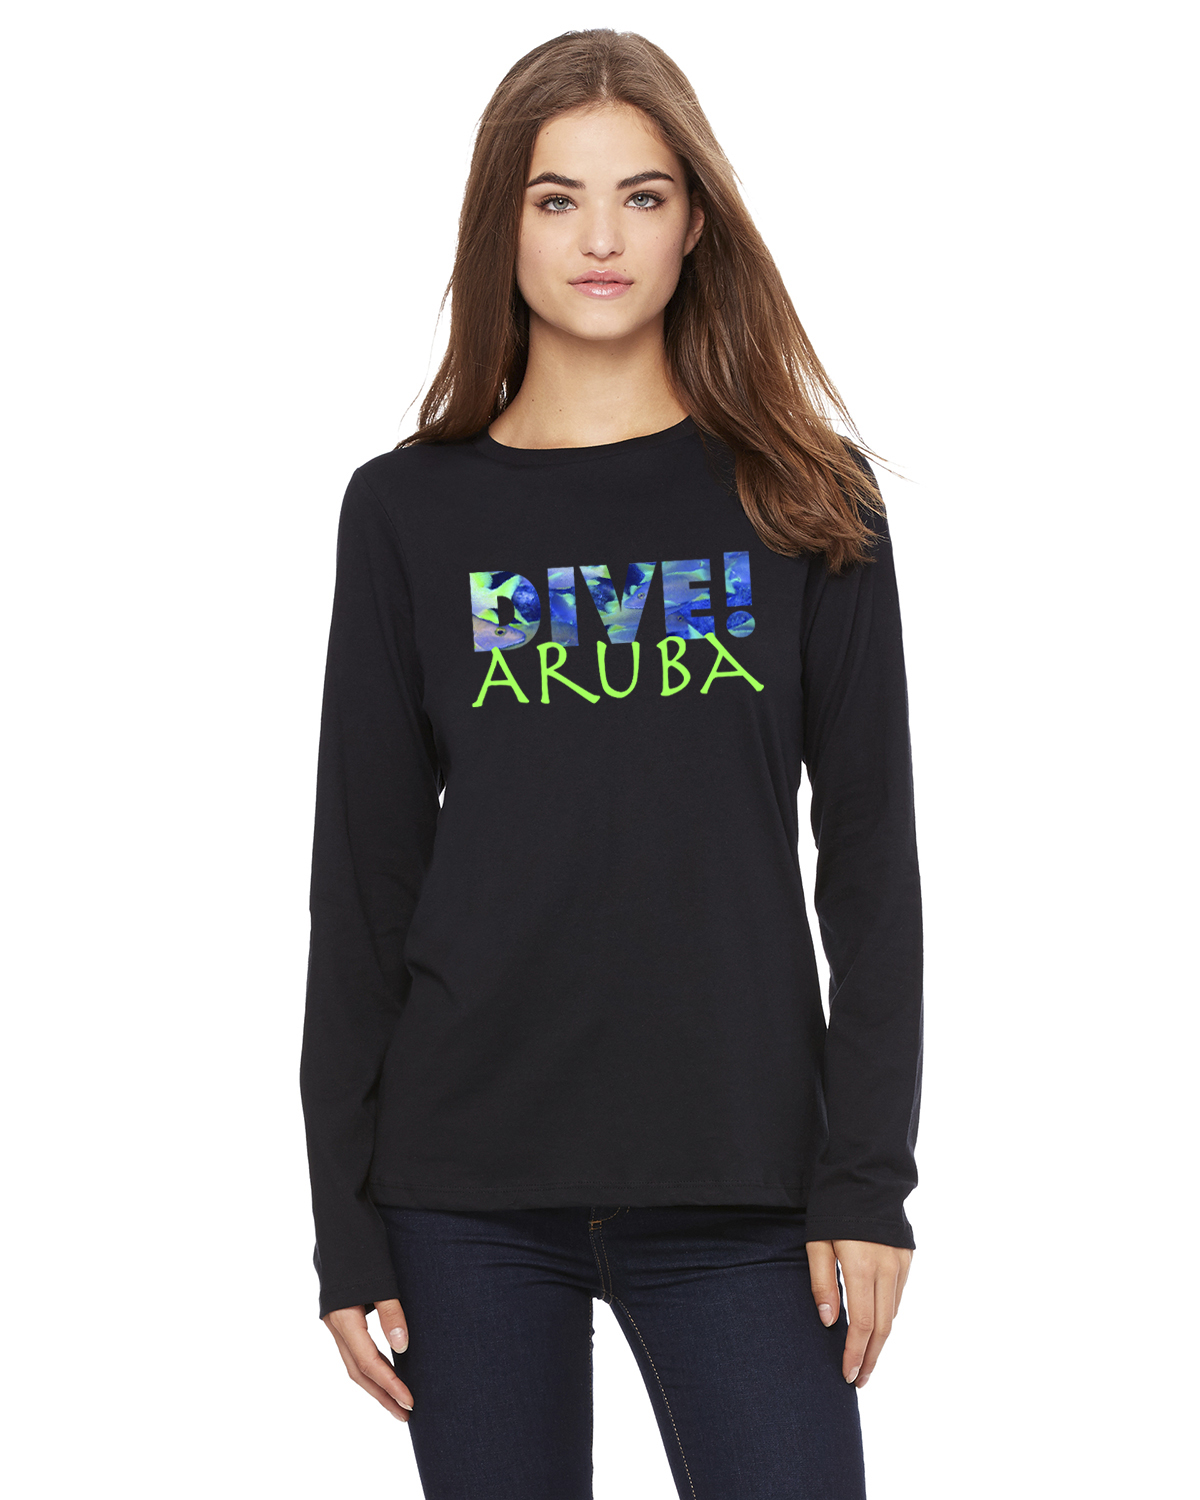 Women's Long Sleeve DIVE Aruba T-Shirt (Black)